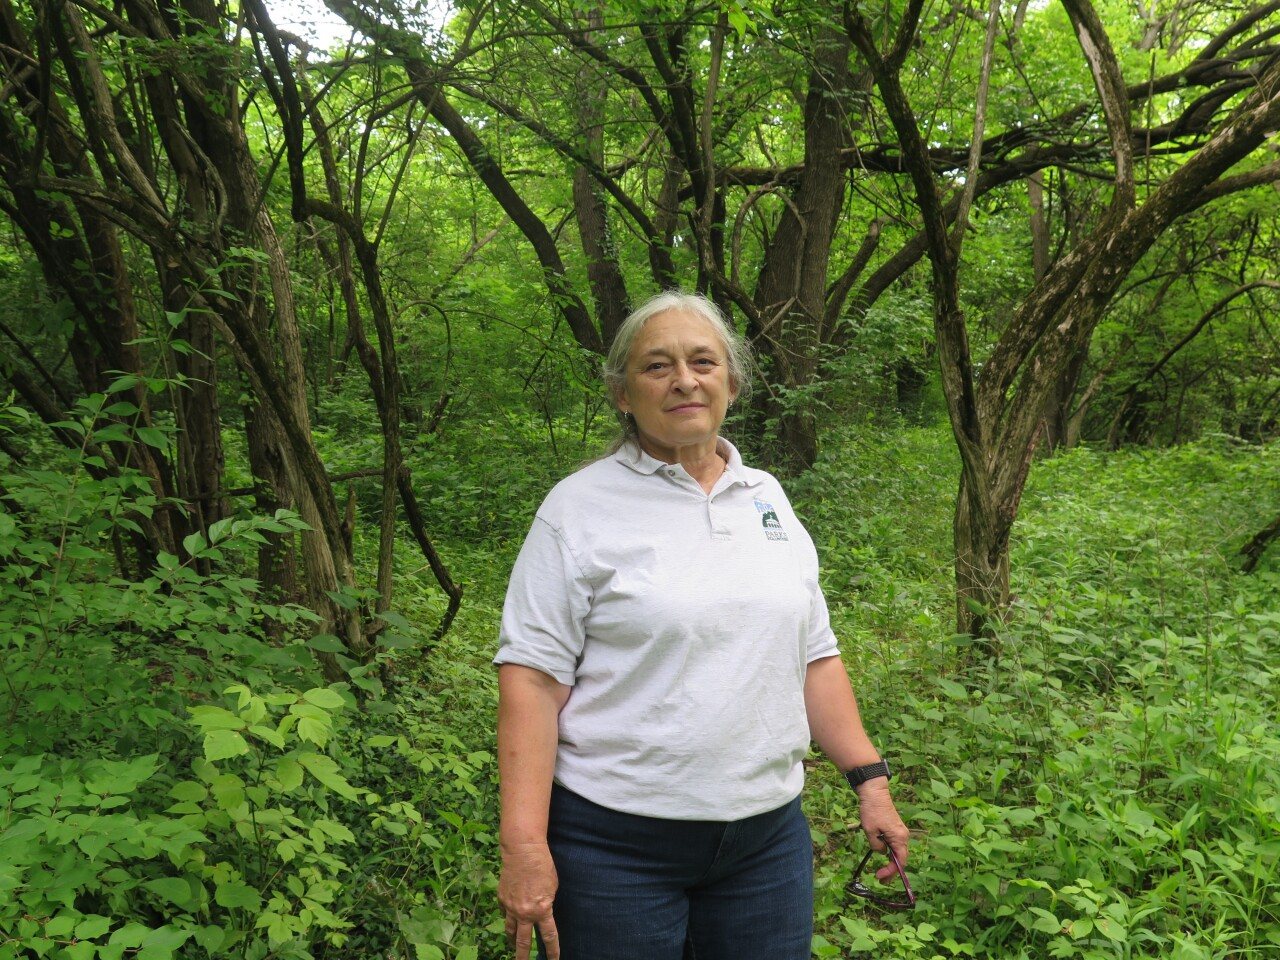 Mary Jo Bazeley is pictured standing in the overgrown Potter's Field cemetery. She is wearing a Cincinnati Parks volunteer shirt, and her long, white hair is pulled back.